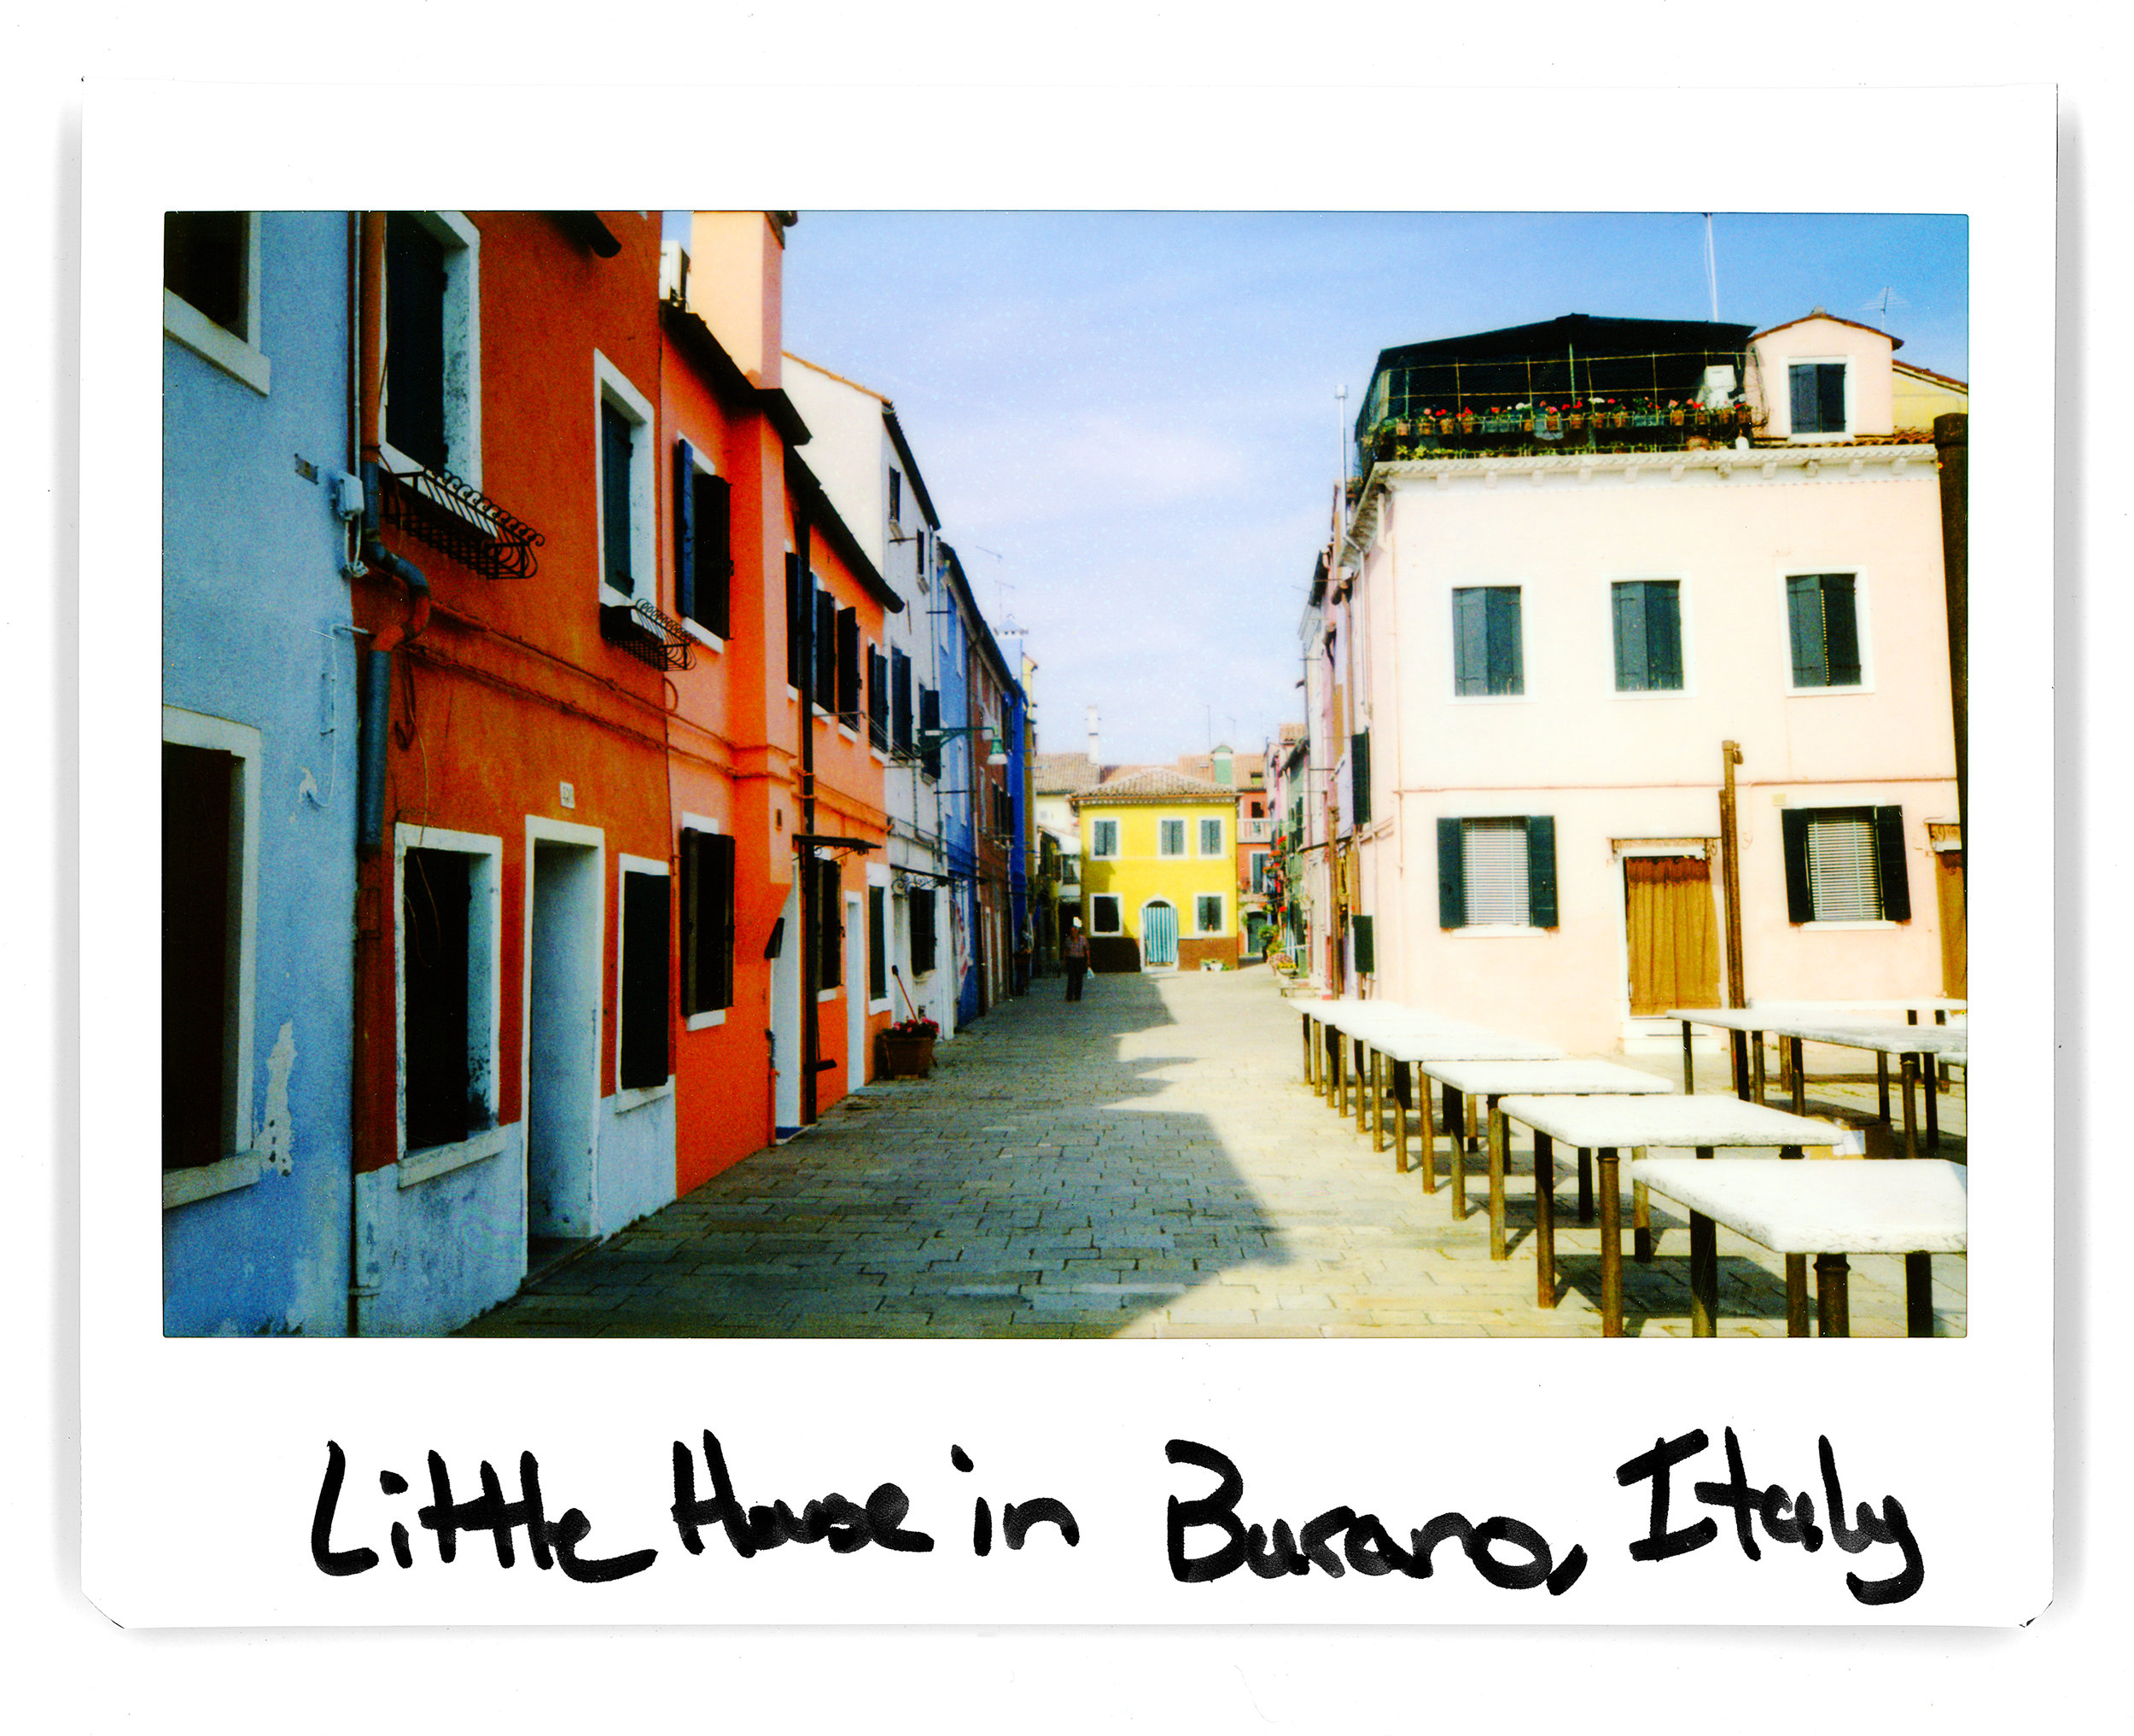 47_Little_House_Burano copy.jpg